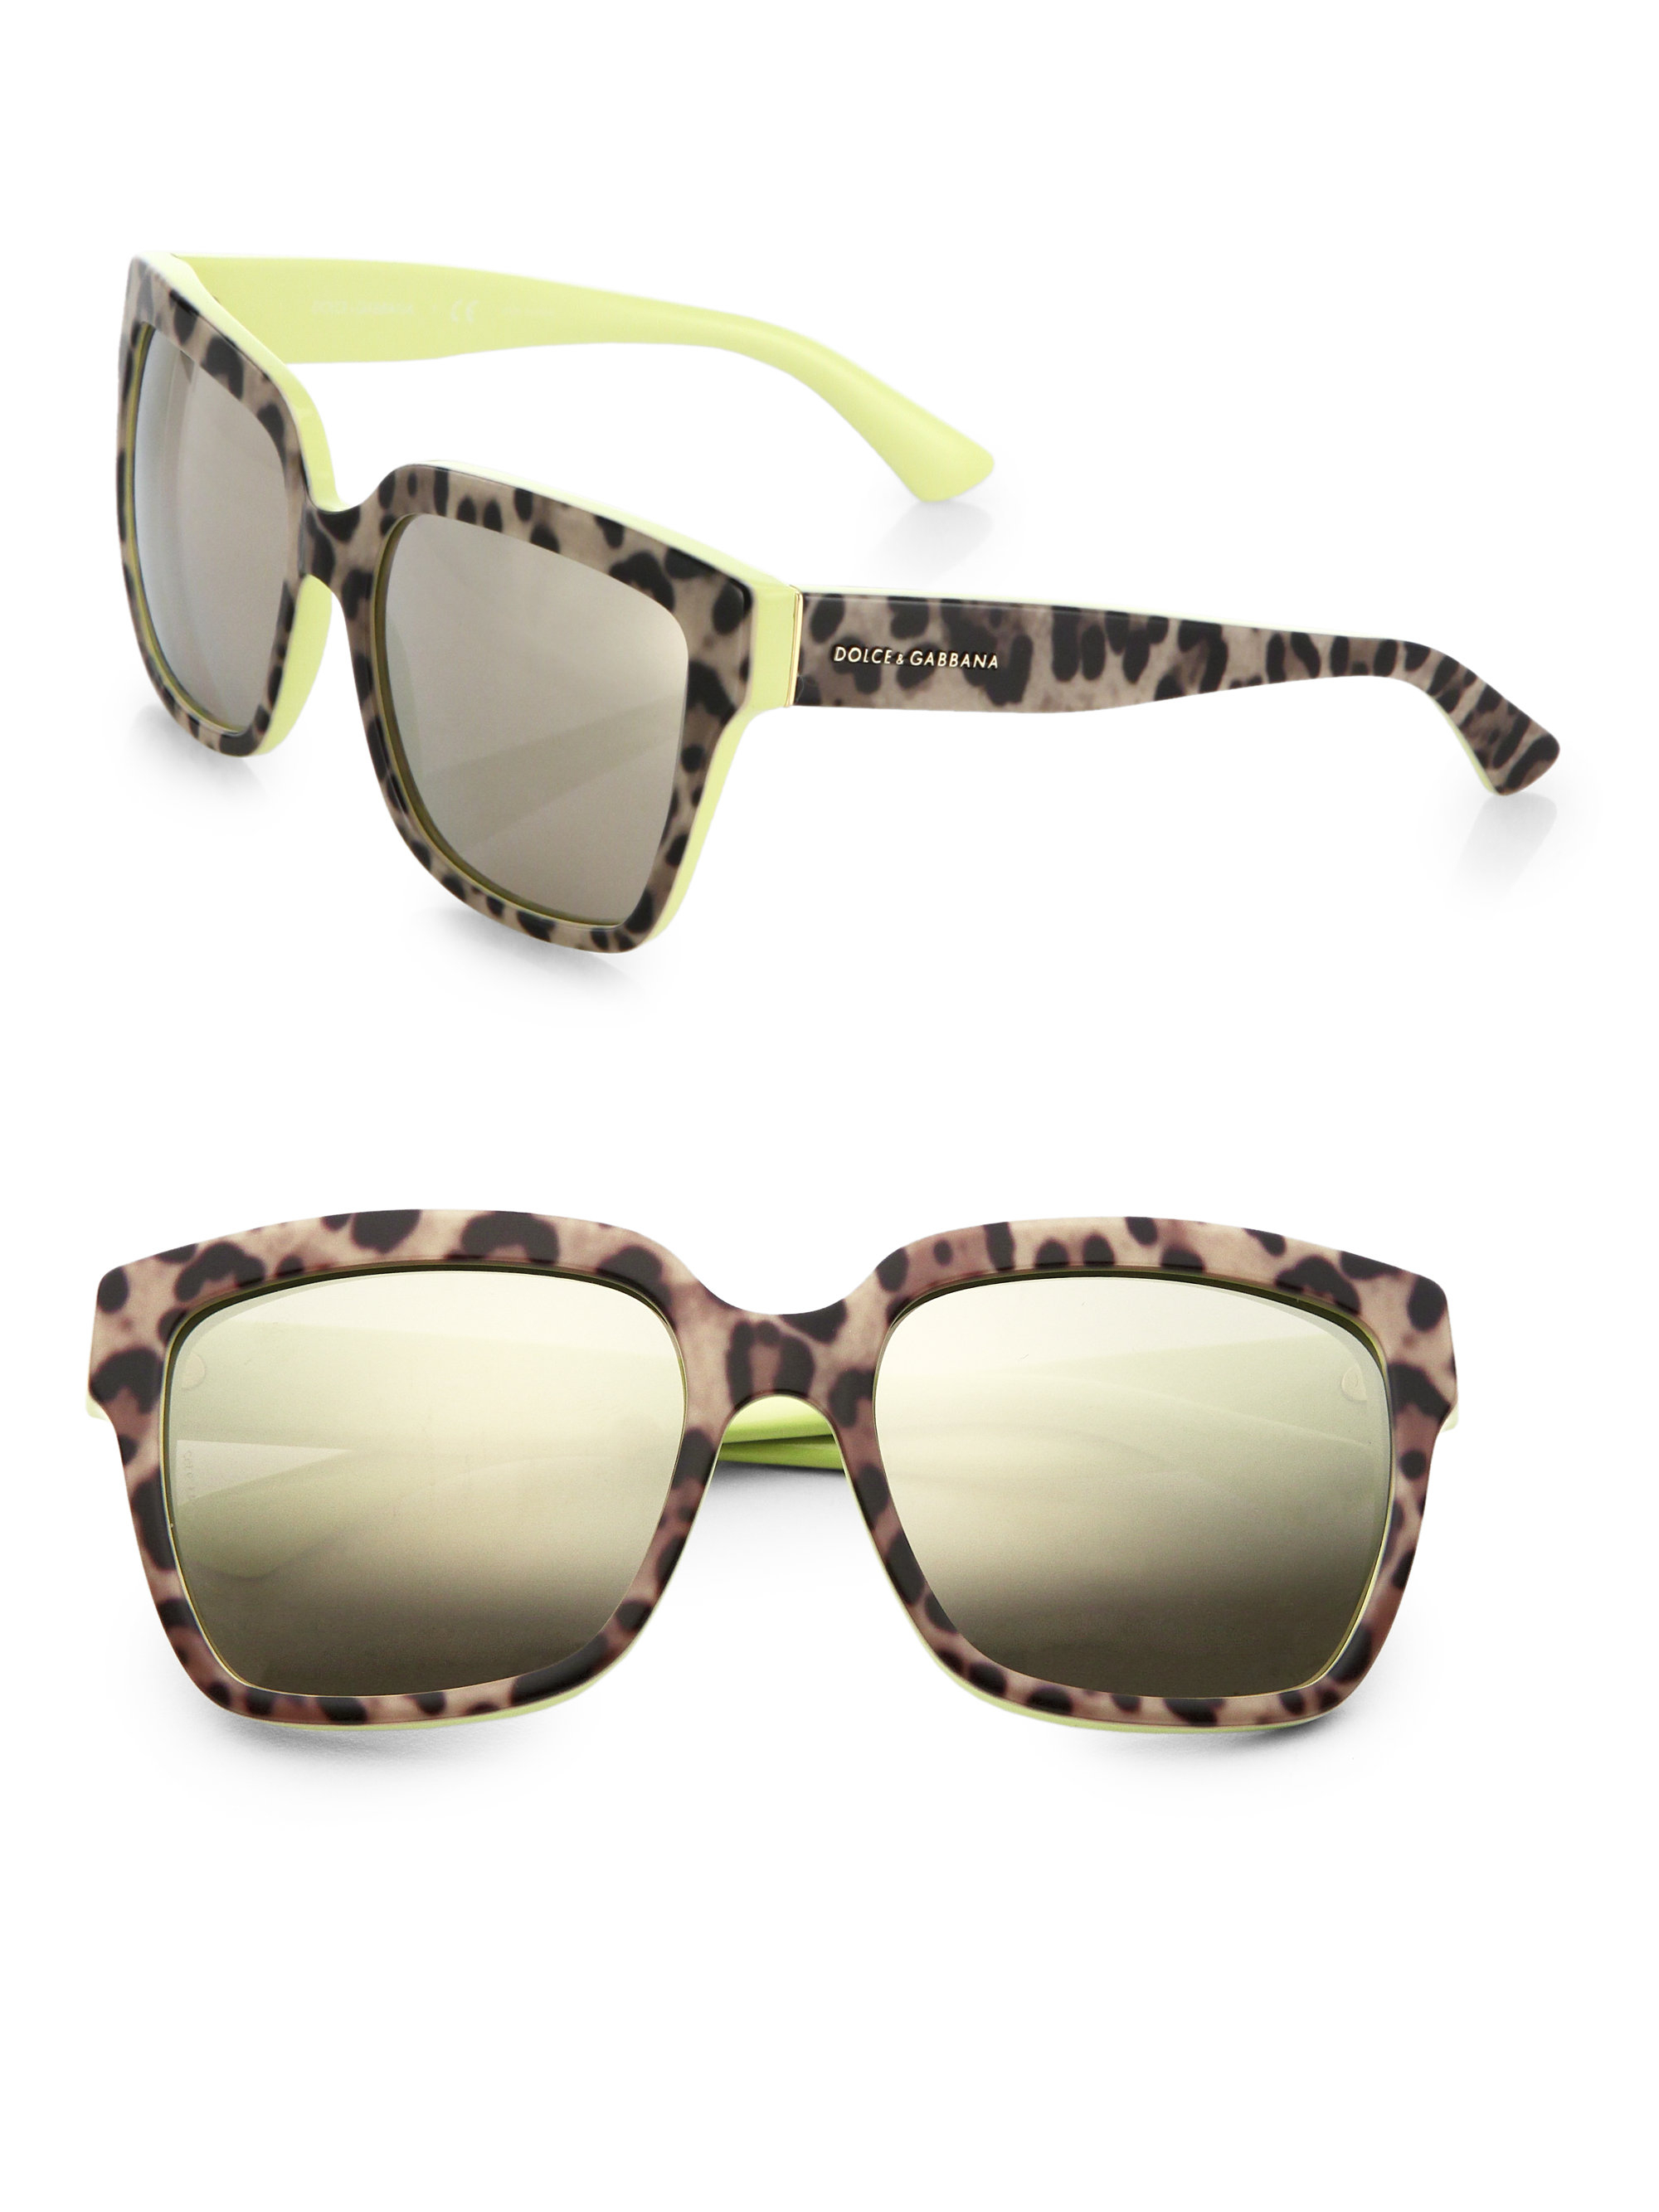 412323760448 Lyst - Dolce & Gabbana Leopard-print 57mm Square Sunglasses in Yellow